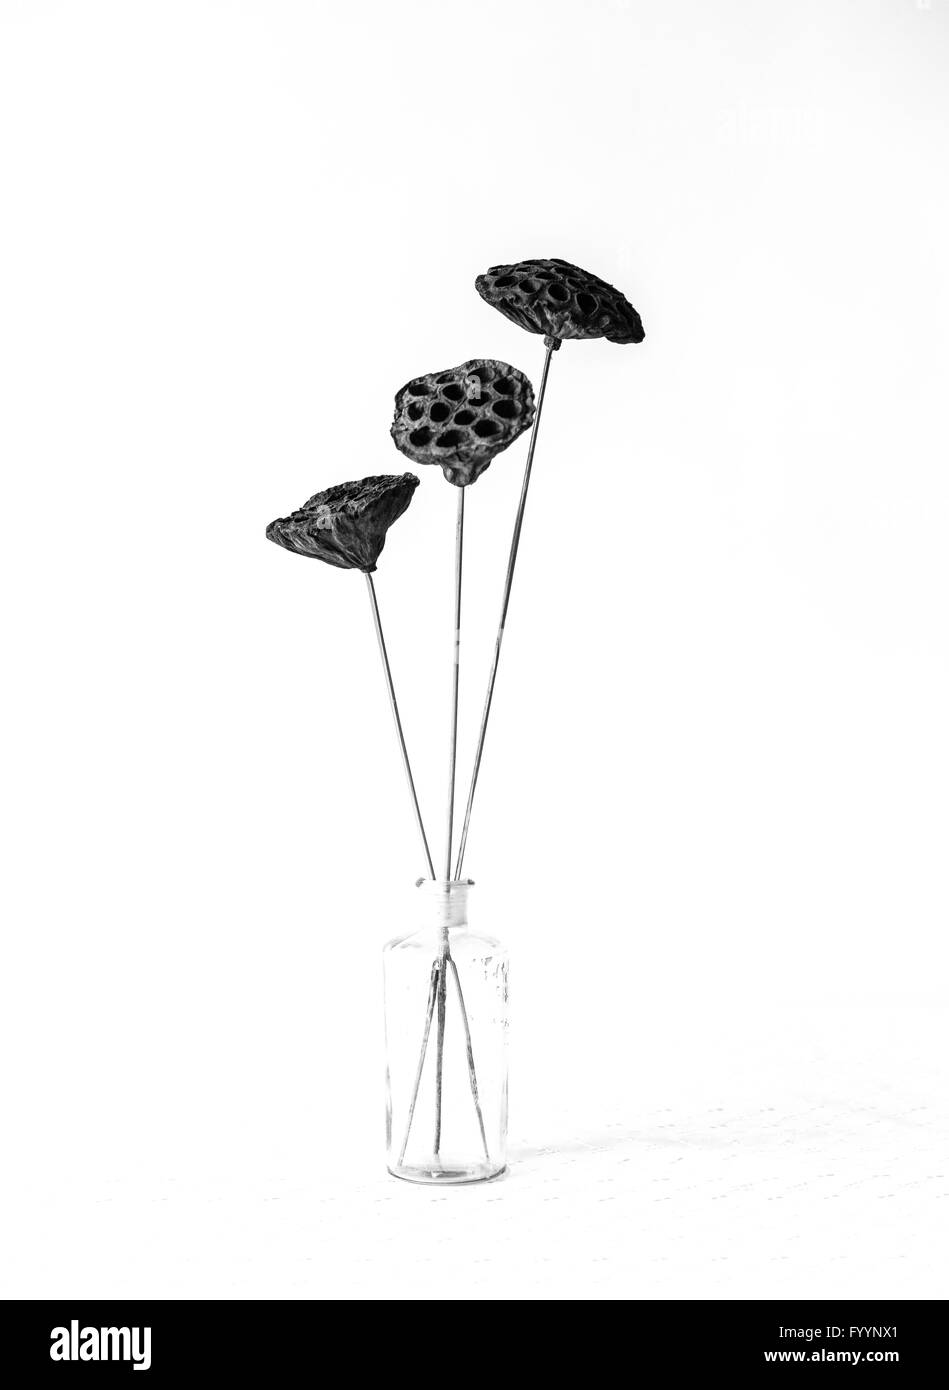 A monochrome image of 3 seed heads in a glass jar against a white background - Stock Image